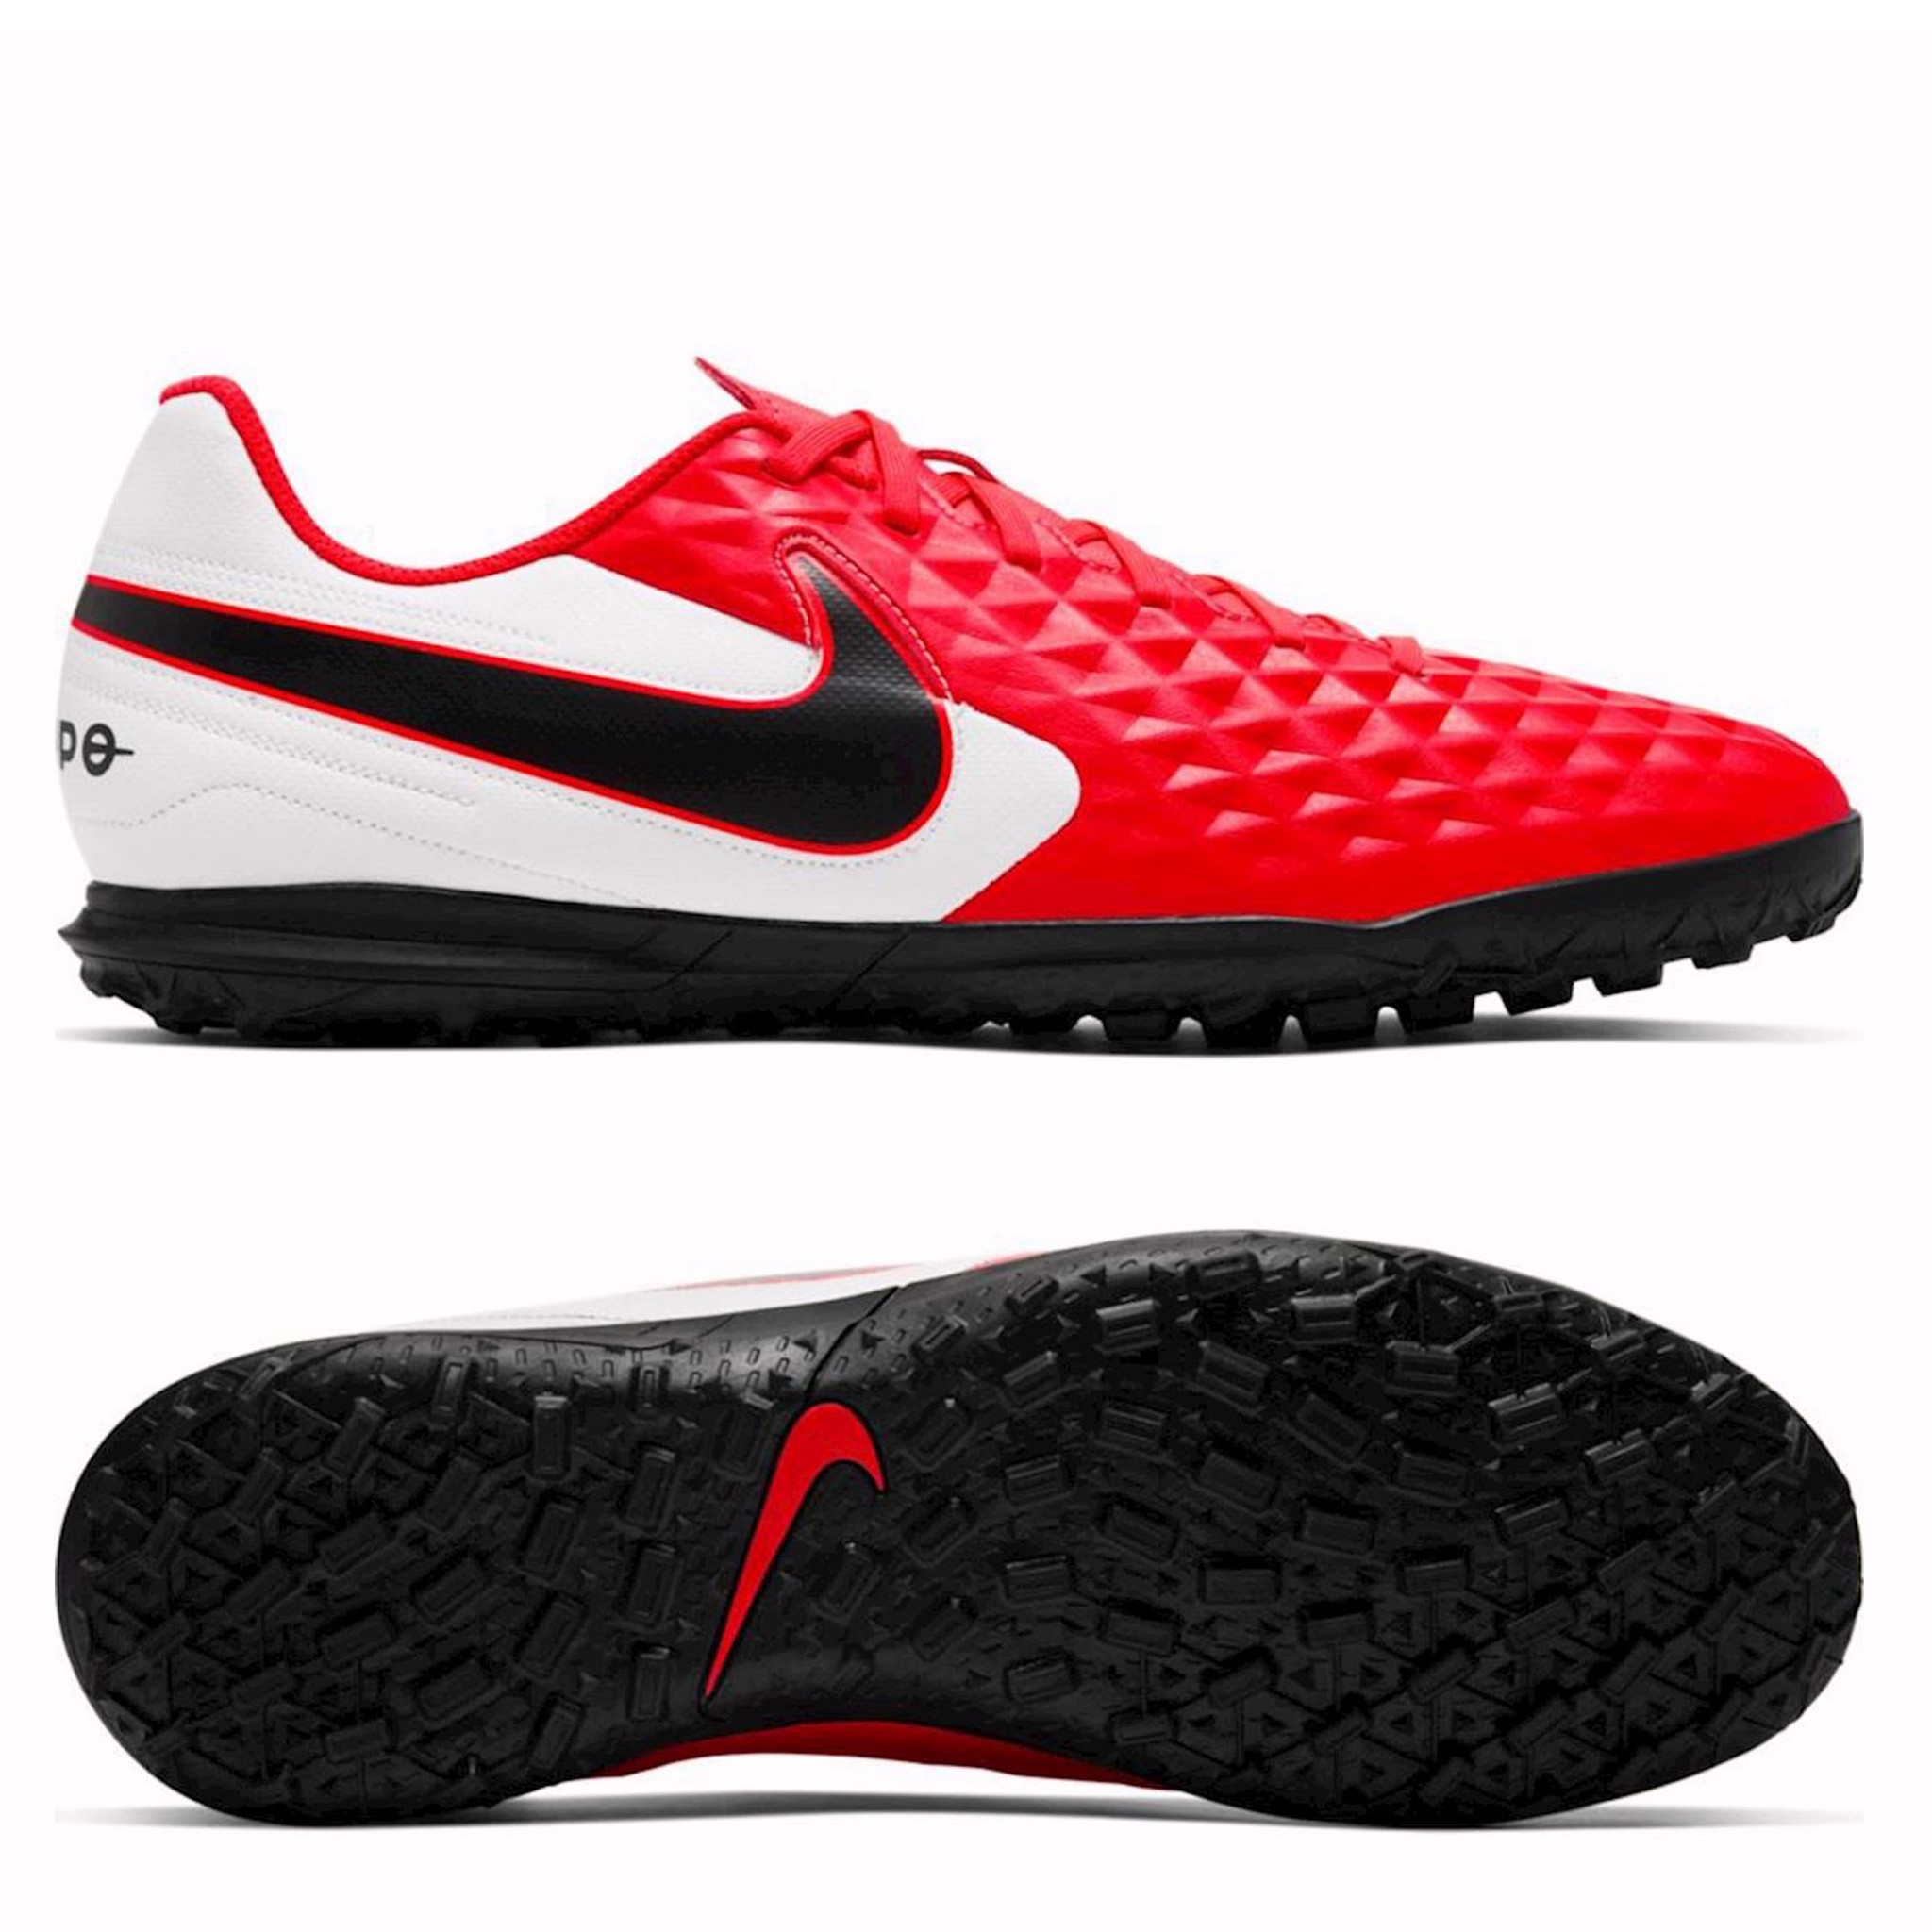 Nike Tiempo Legend 8 Club TF FUTURE LAB - Laser Crimson/White/black